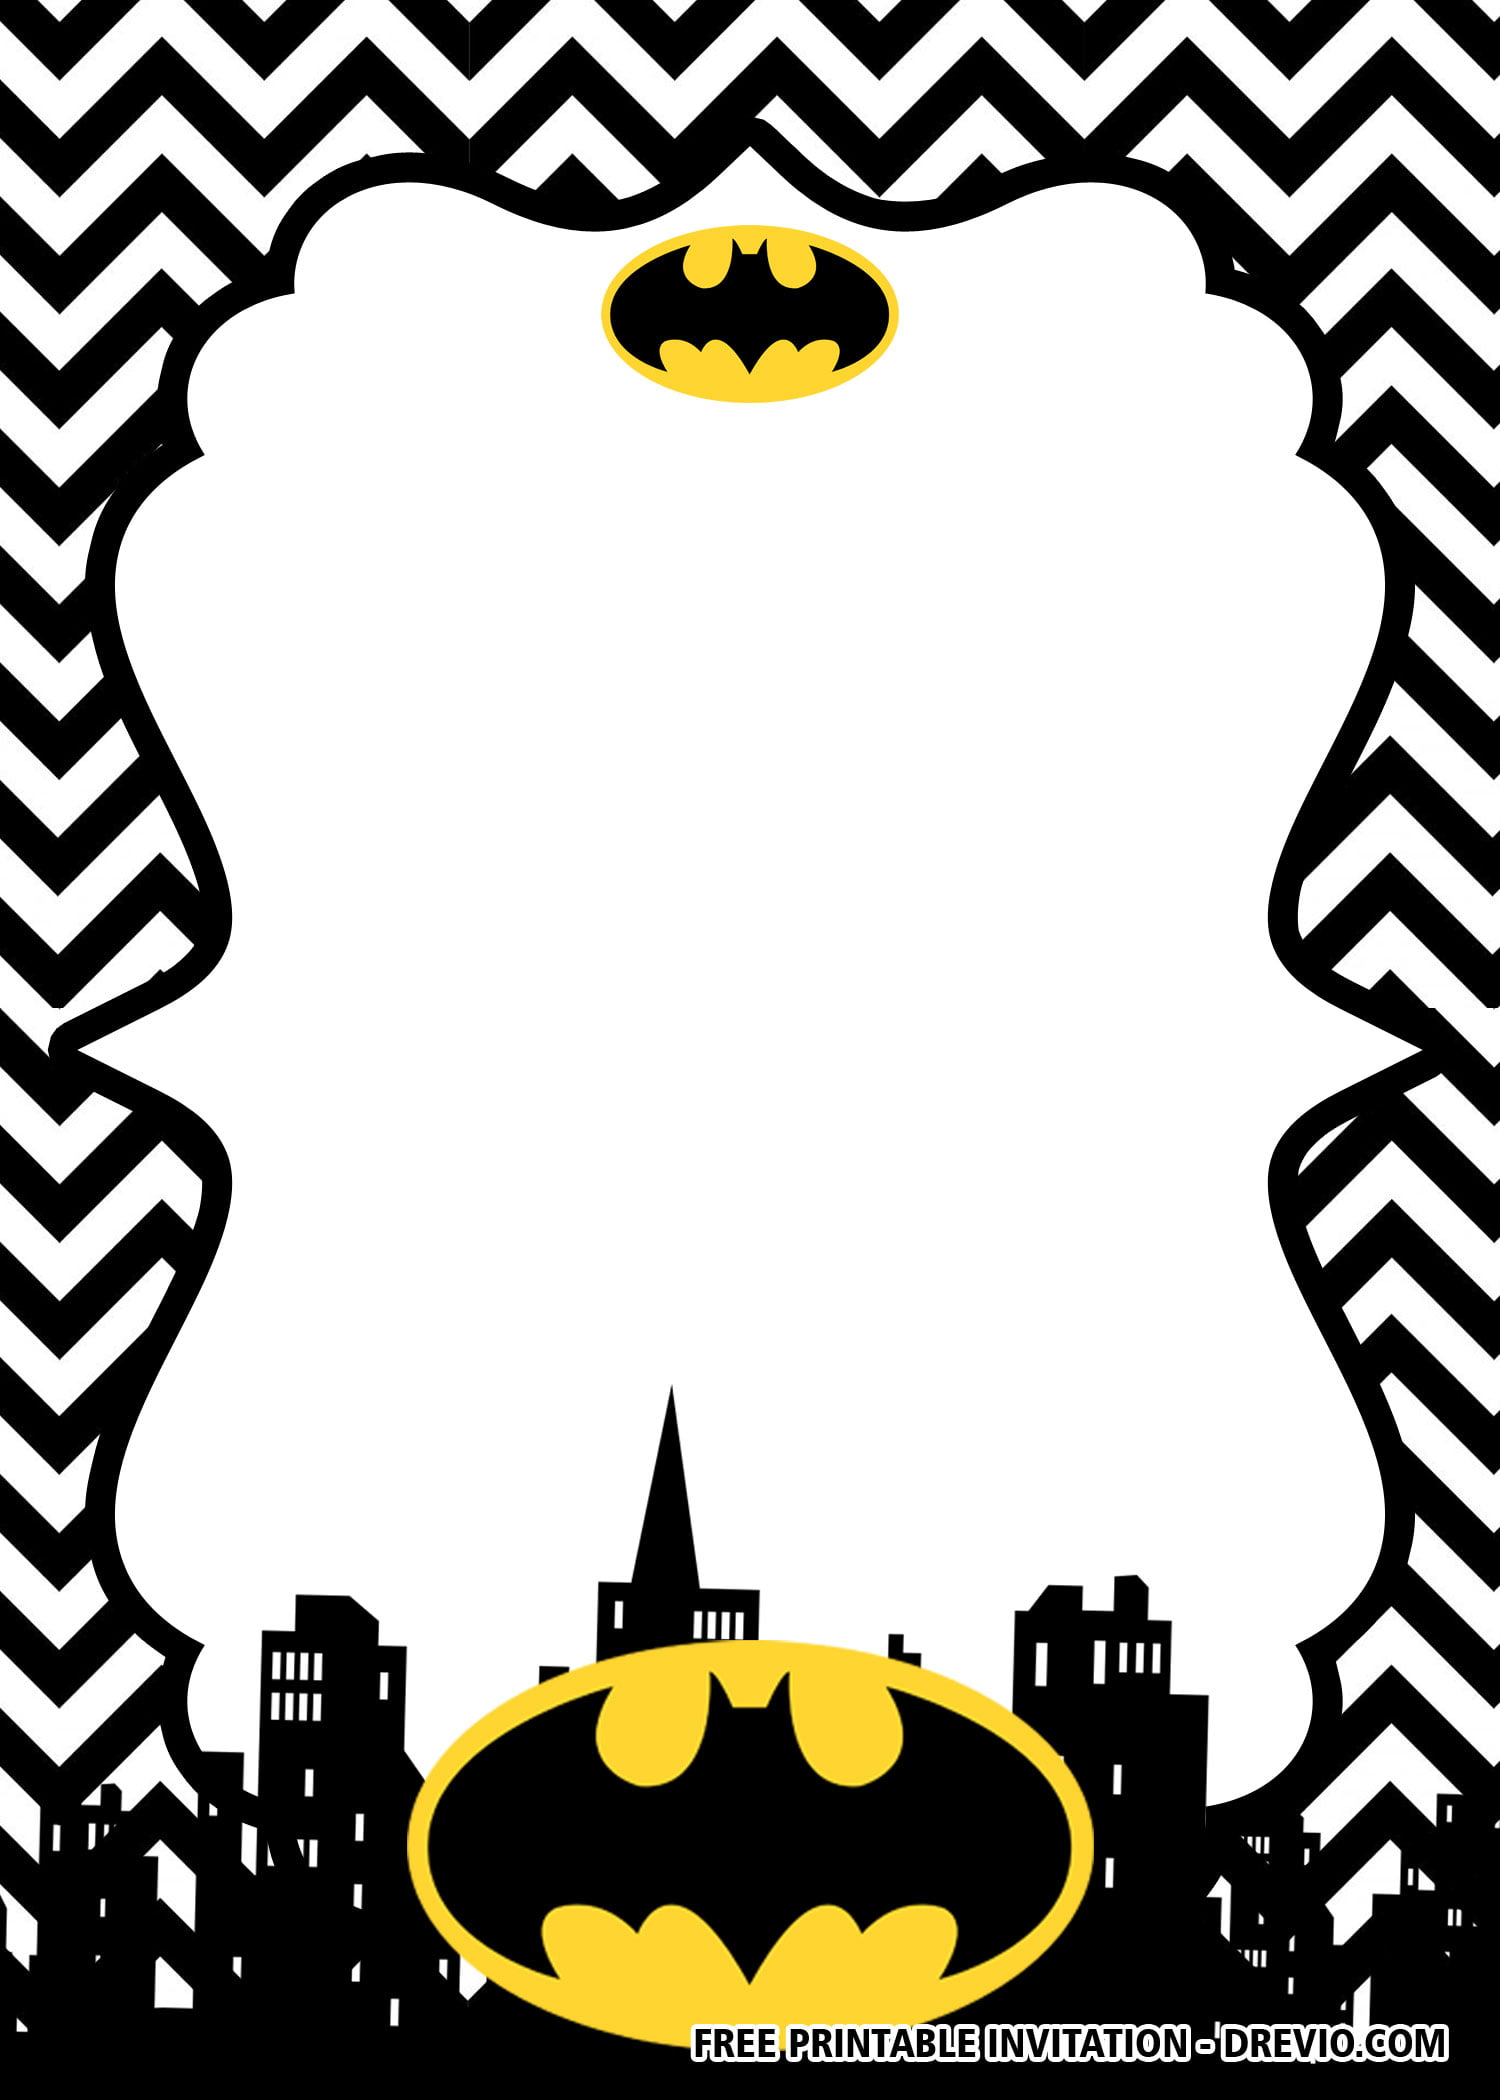 Free Printable Batman Birthday Invitation Templates